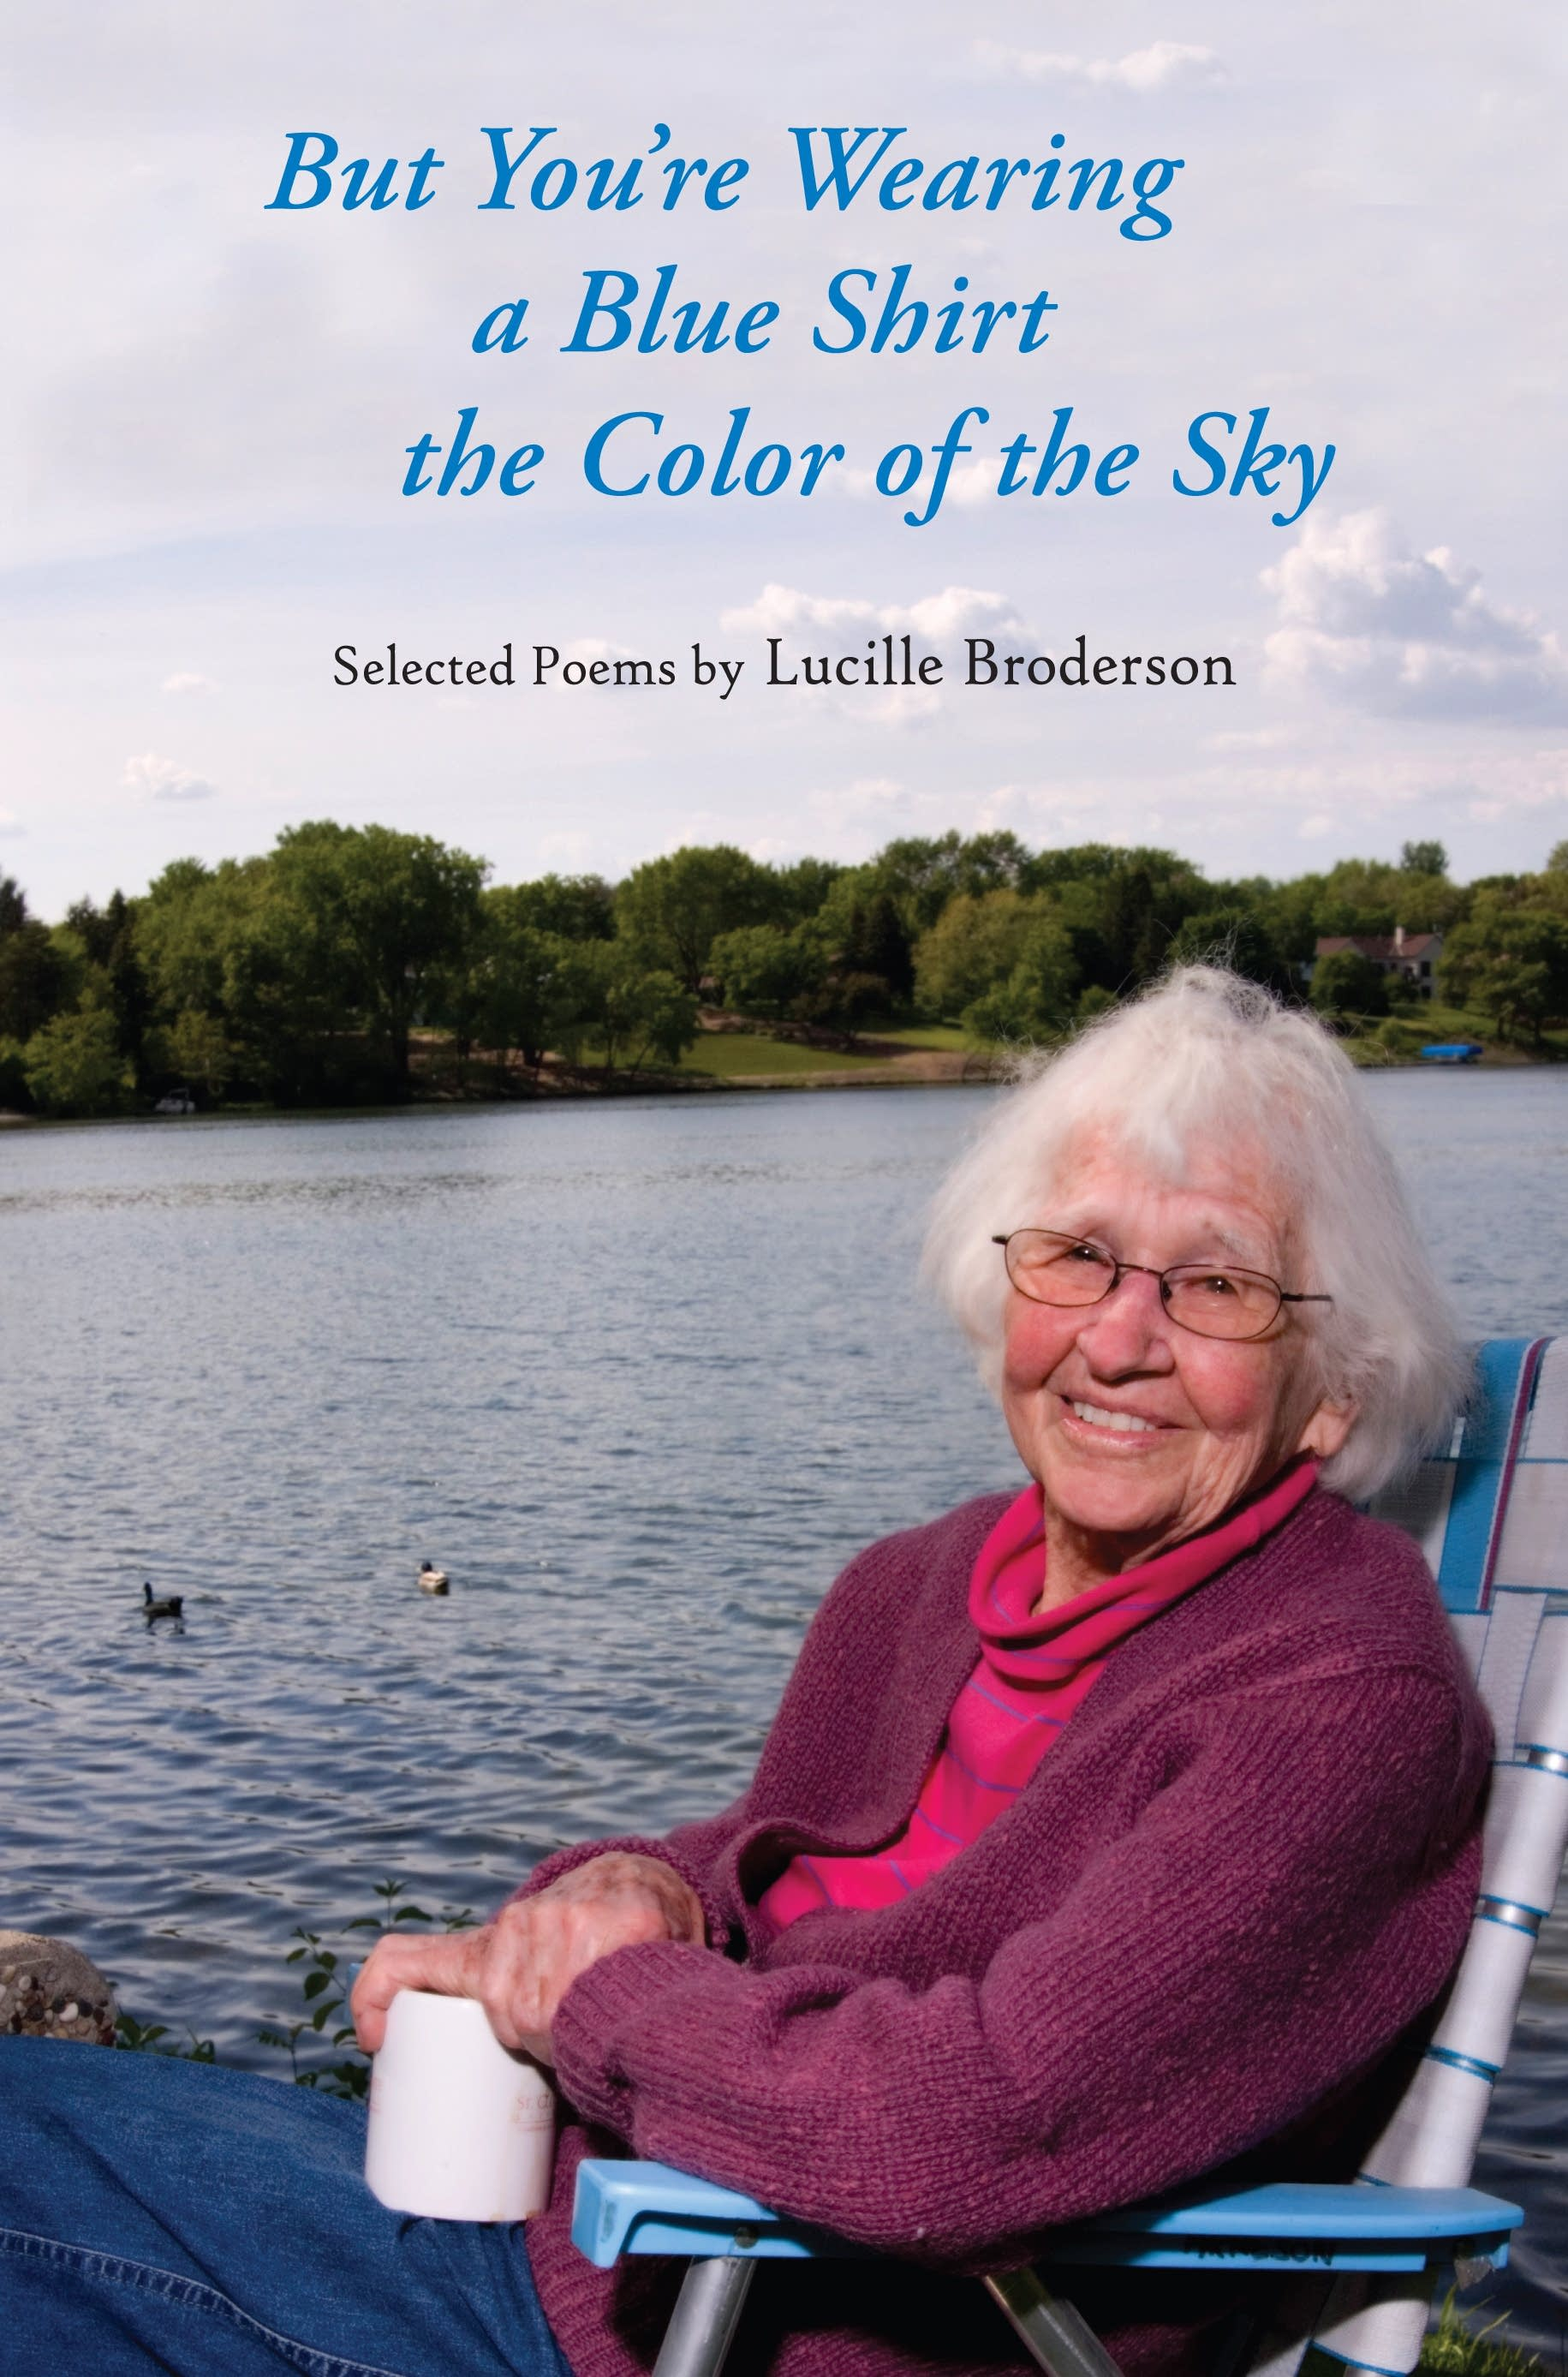 """But You're Wearing a Blue Shirt the Color of the Sky"" by Lucille Broderson"